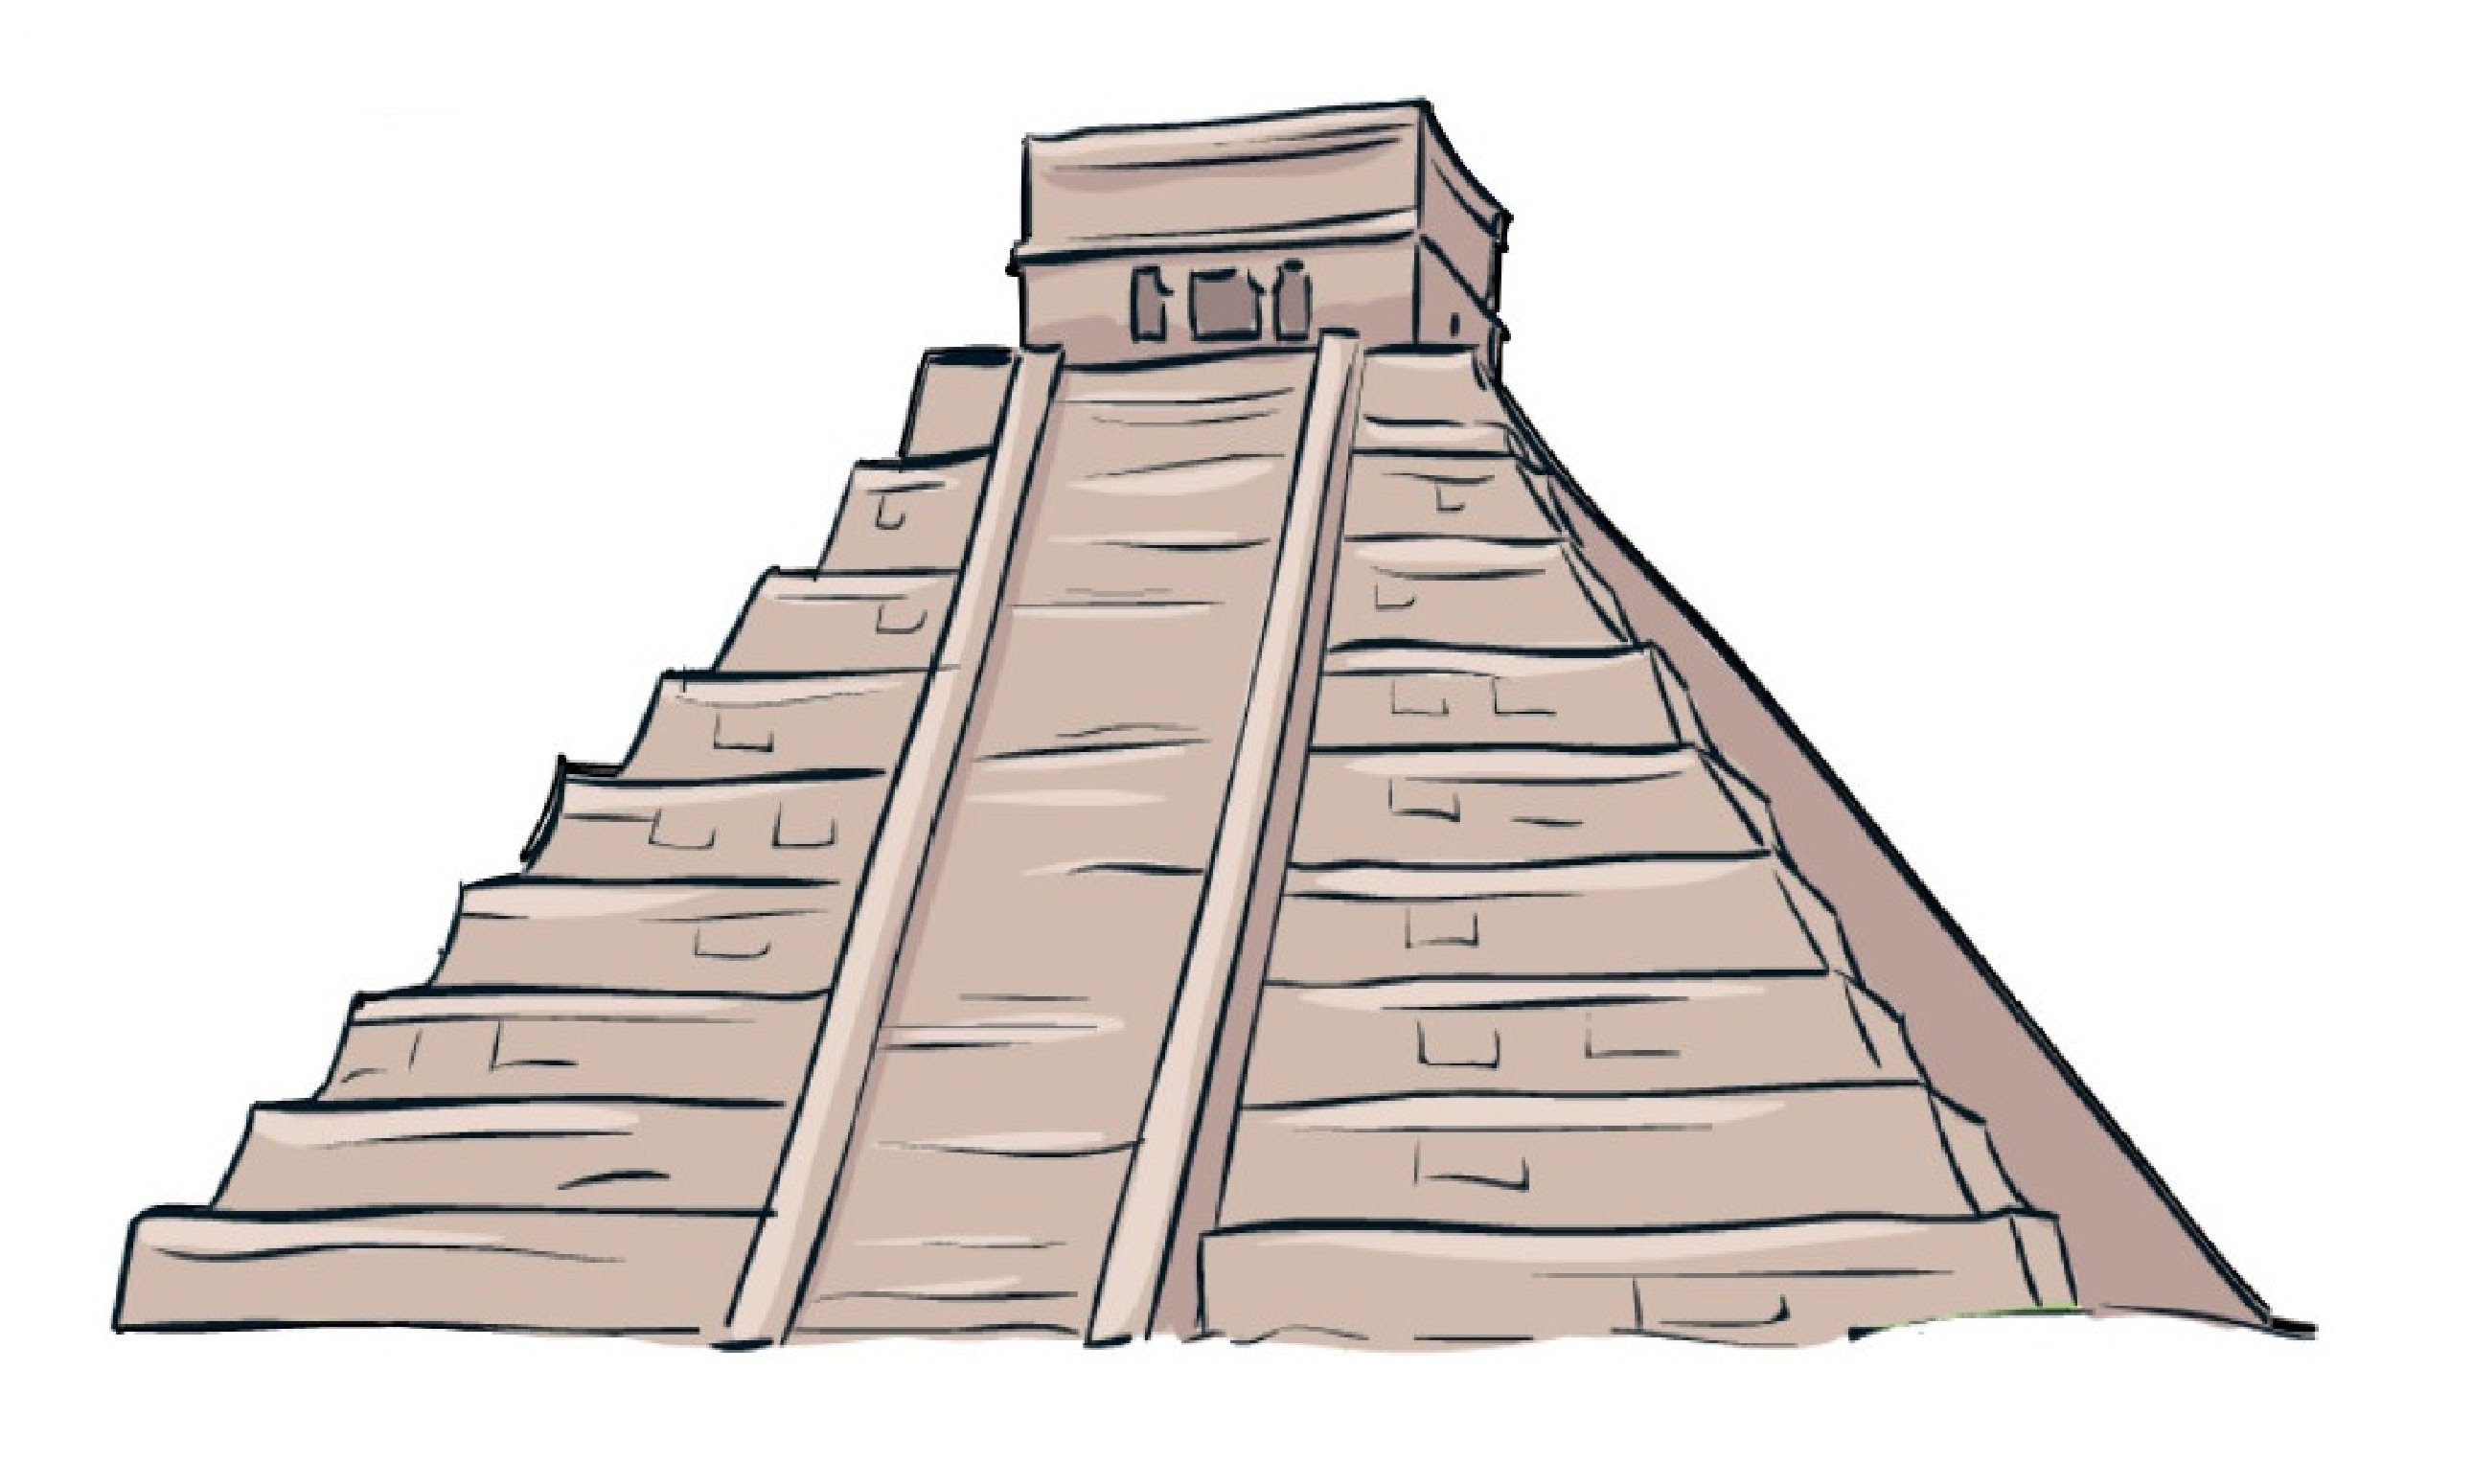 Aztec clipart aztec temple. Pyramid drawing at getdrawings